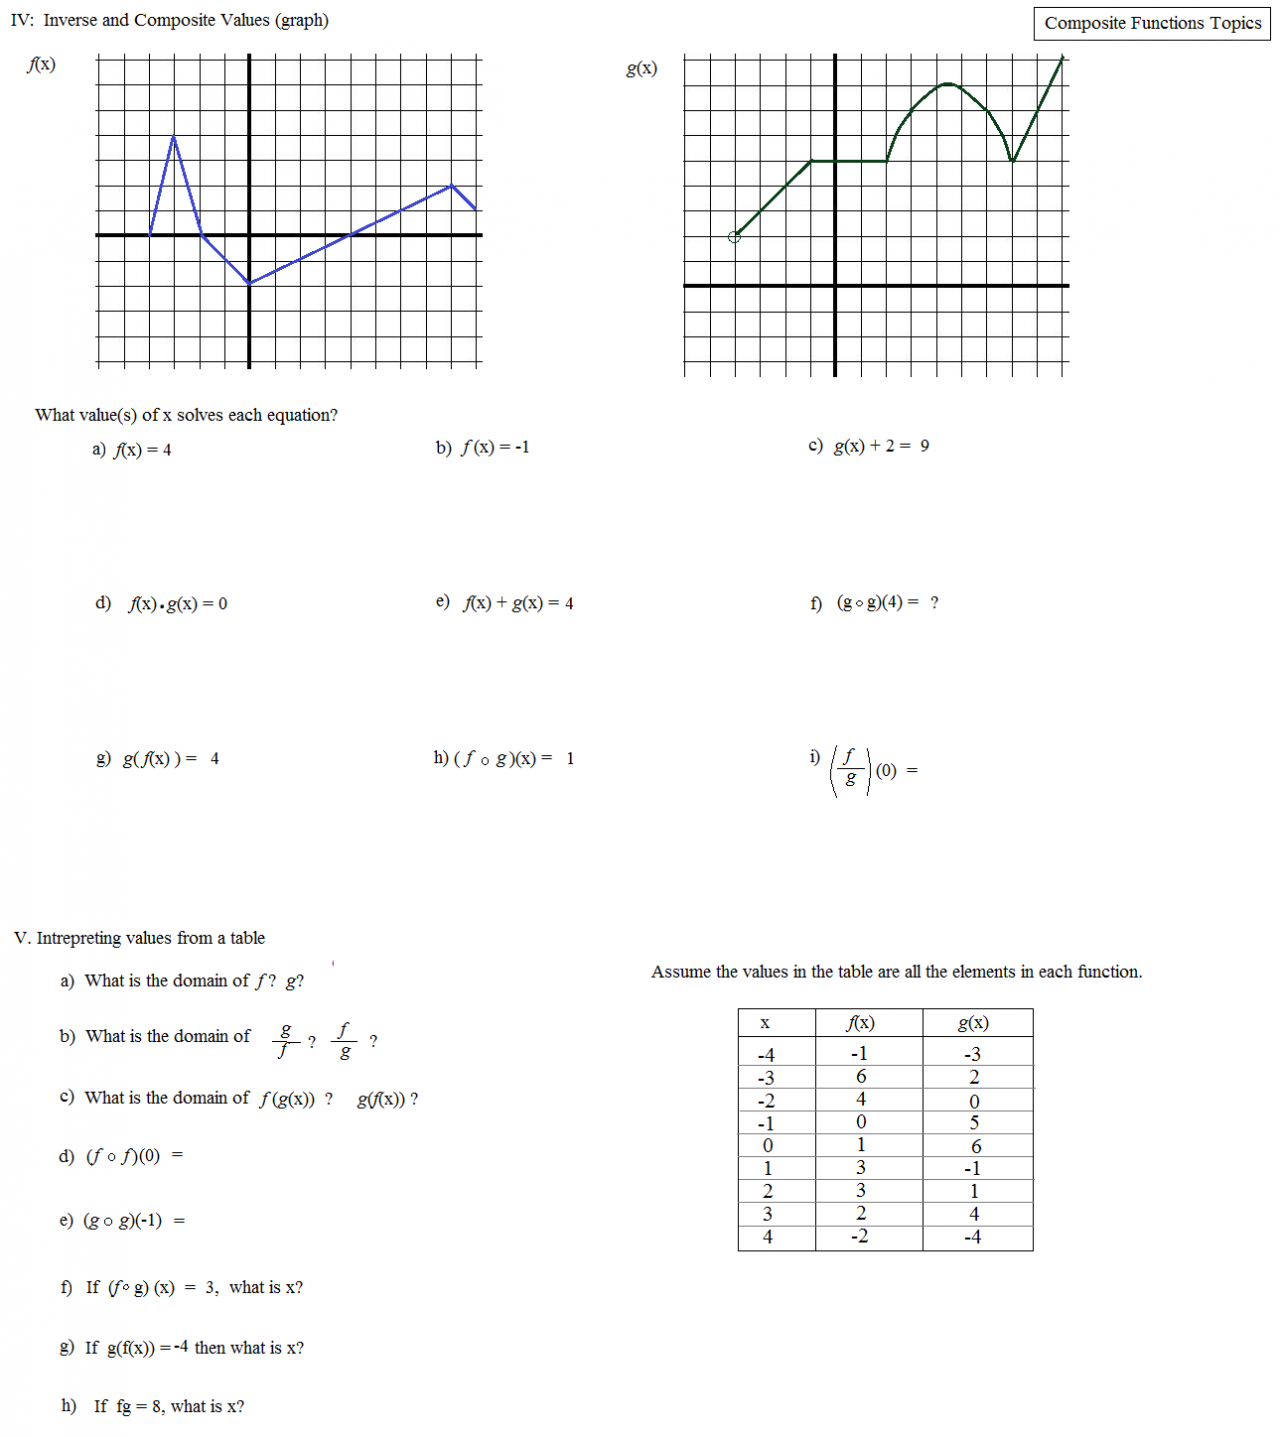 worksheet Composite Functions Worksheet With Answers math plane composite functions topics function 3